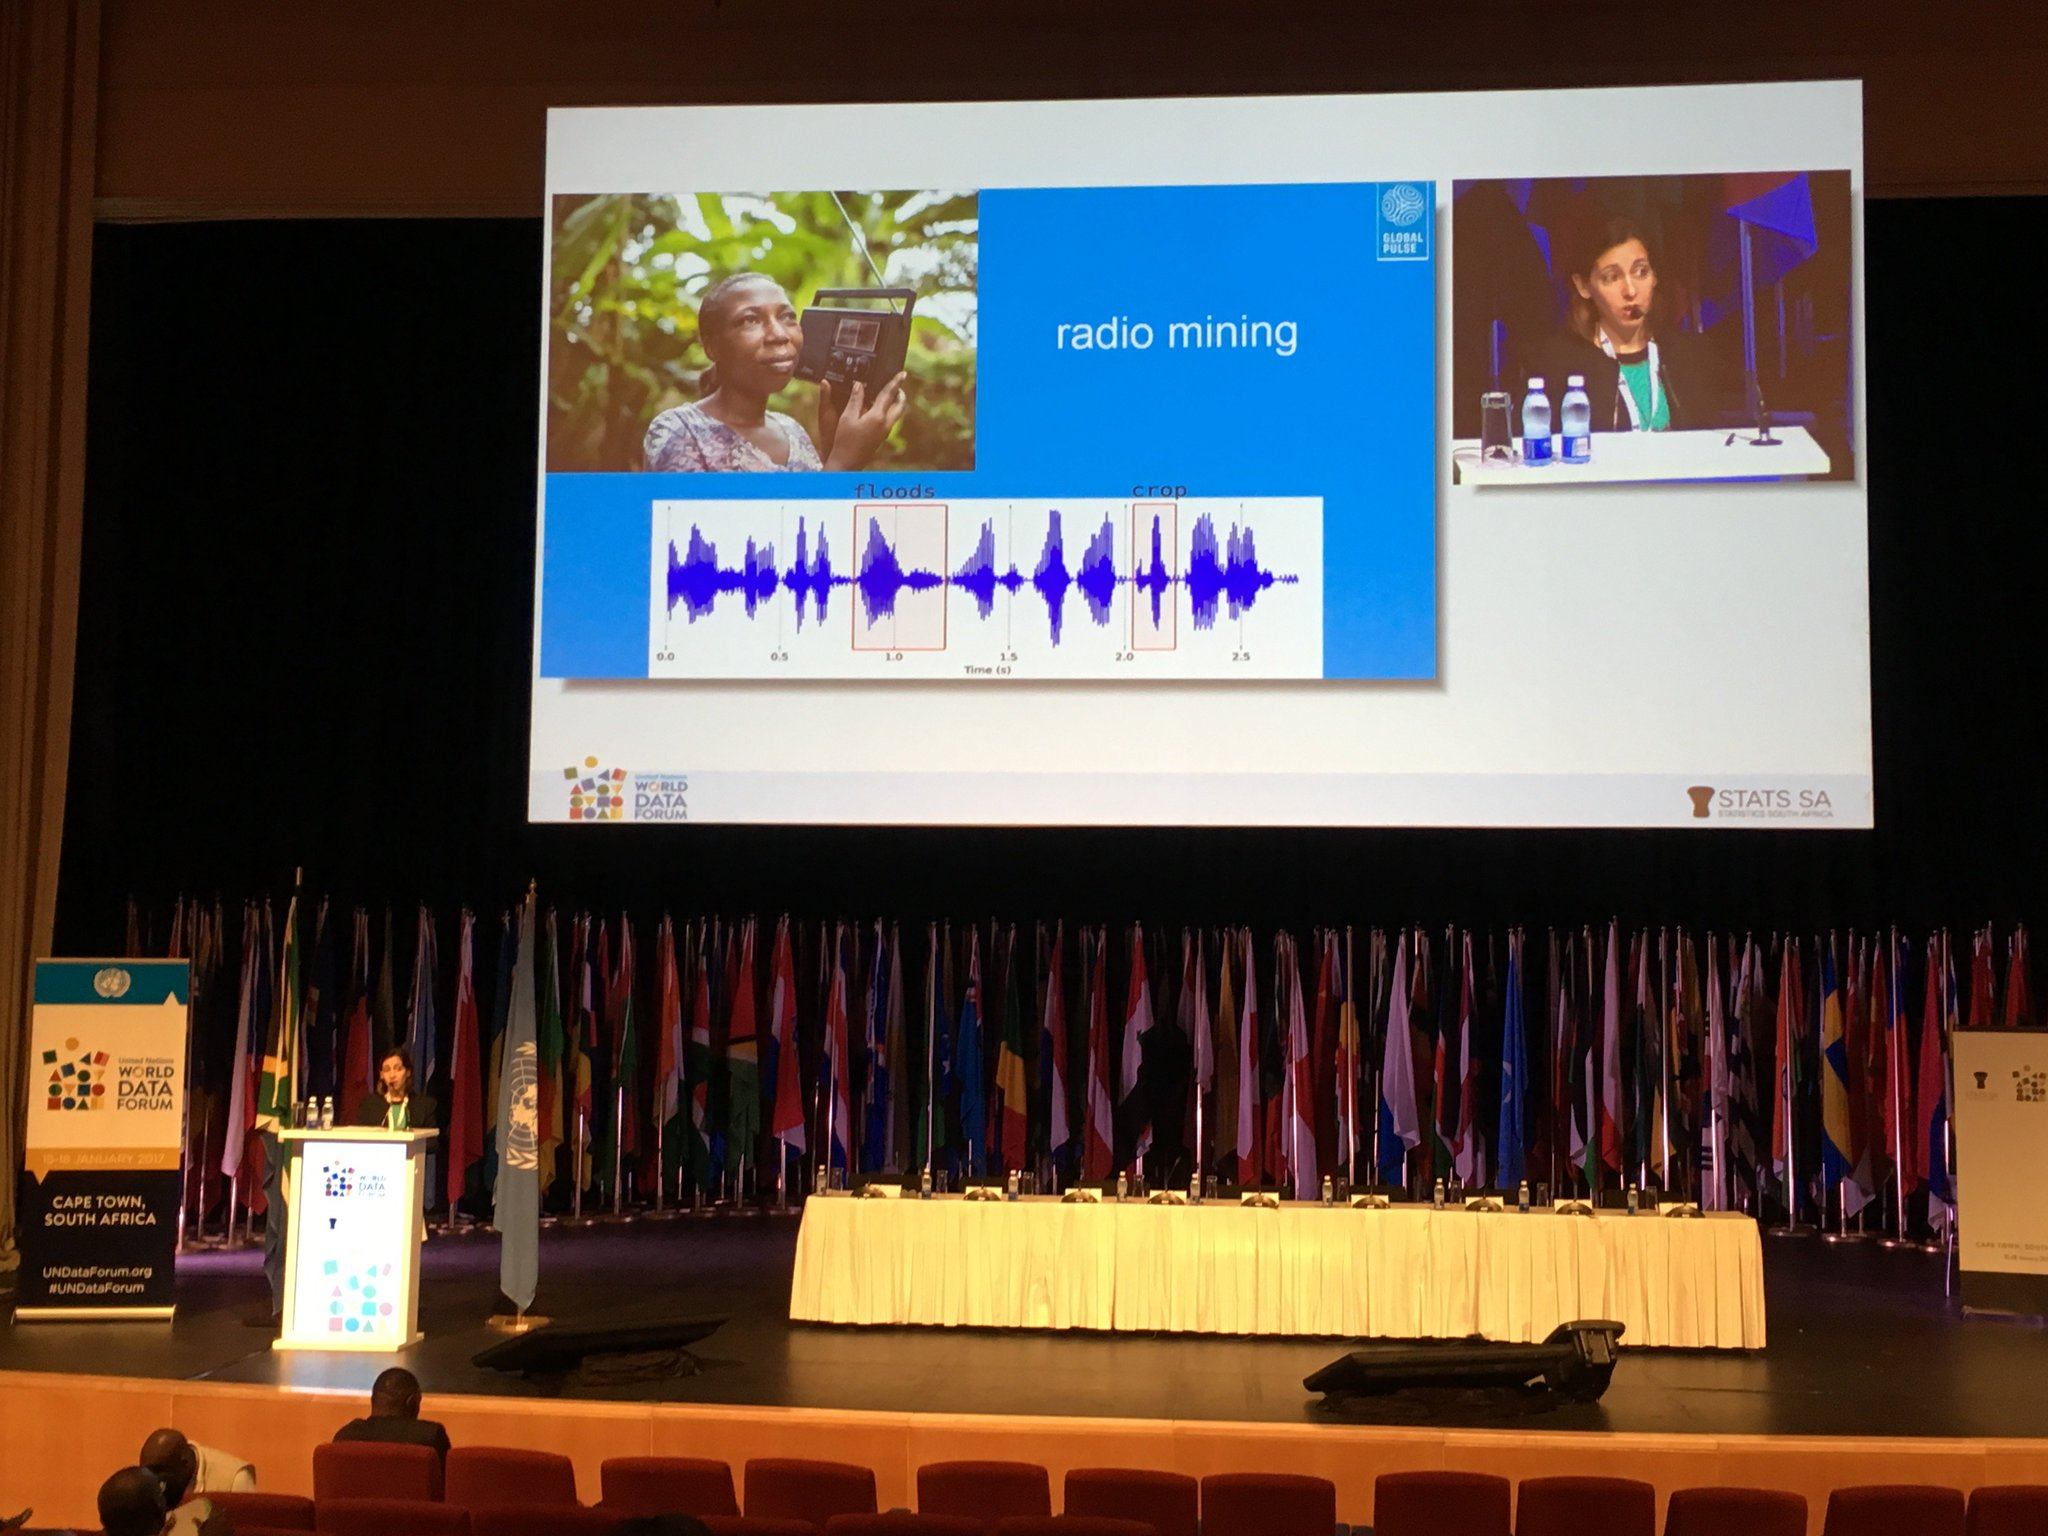 Presenting our radio mining tool @UNDataForum! Looking forward to our interactive workshop this afternoon! https://t.co/4YZA45WL1E https://t.co/UNHg4lskhK